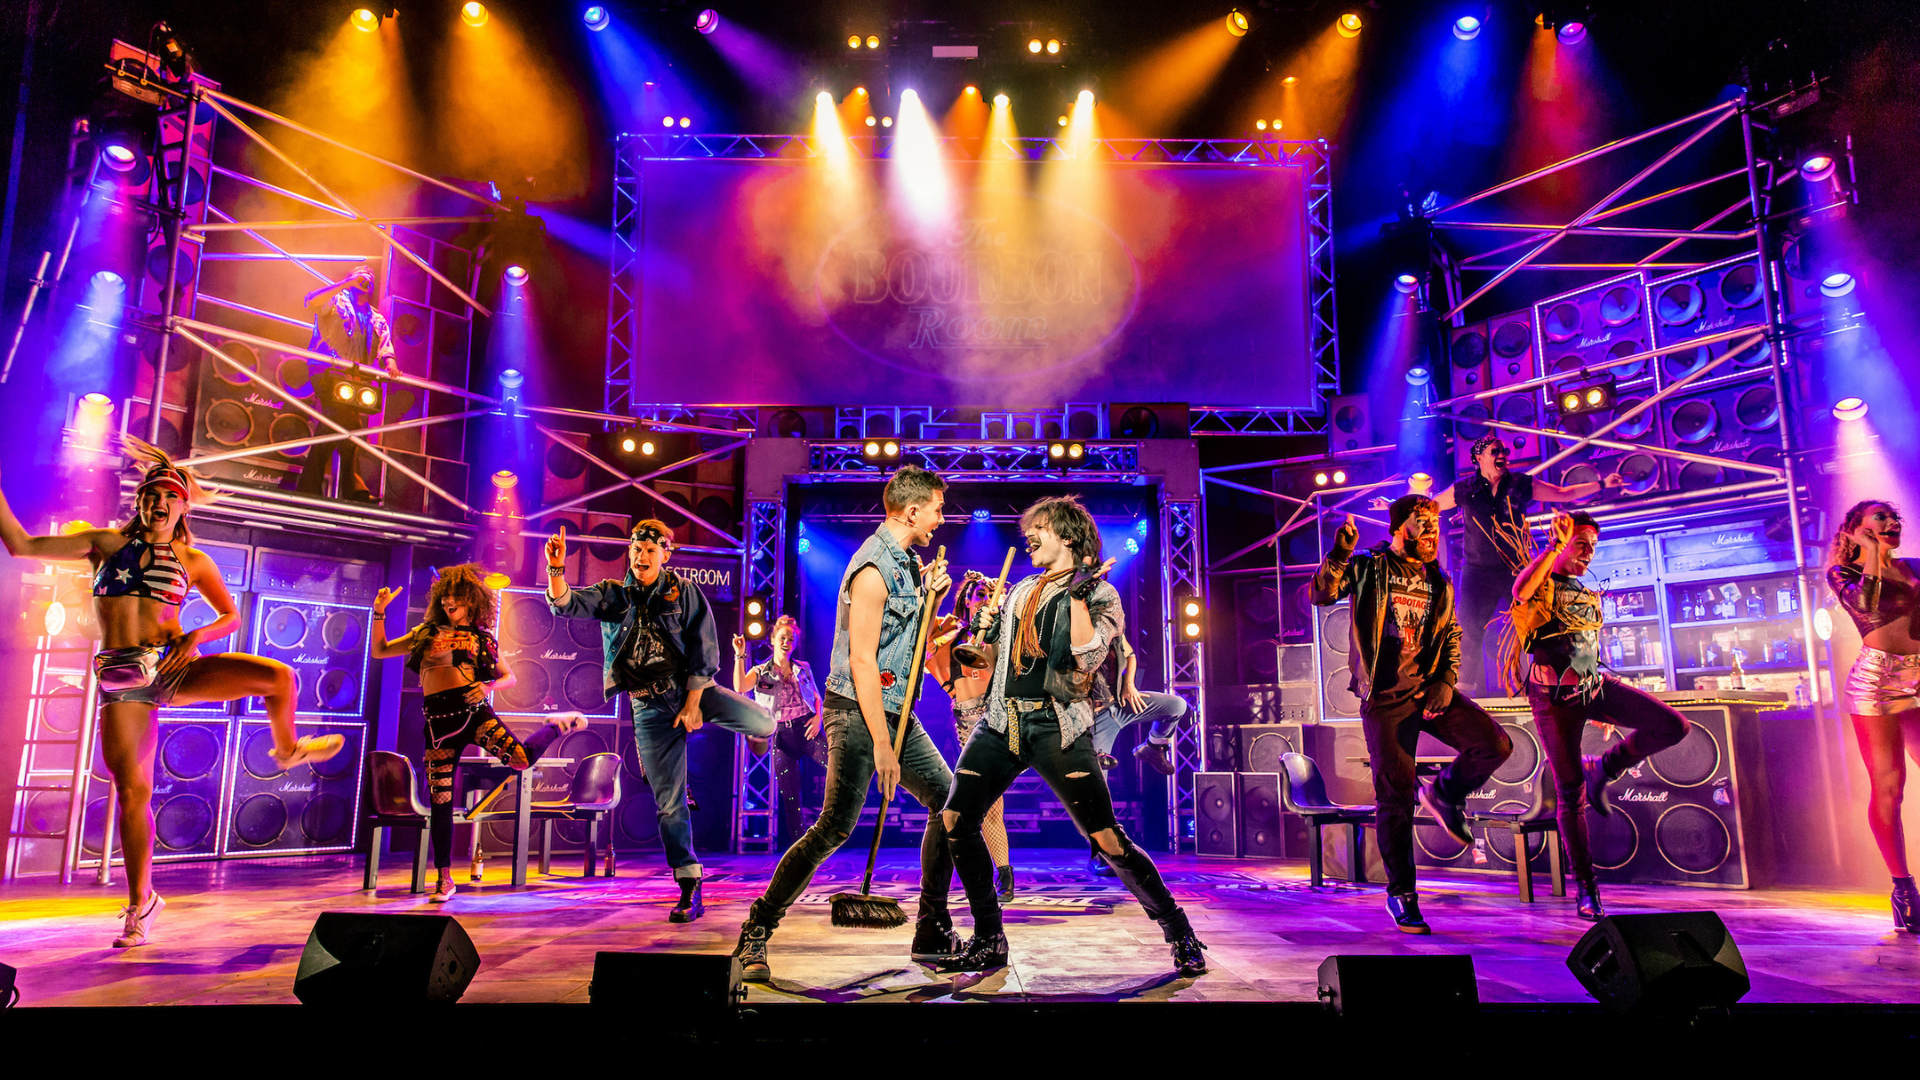 Rock of Ages 2018/19 tour production shot: Two male performers stand face to face, singing, while others dance in the background